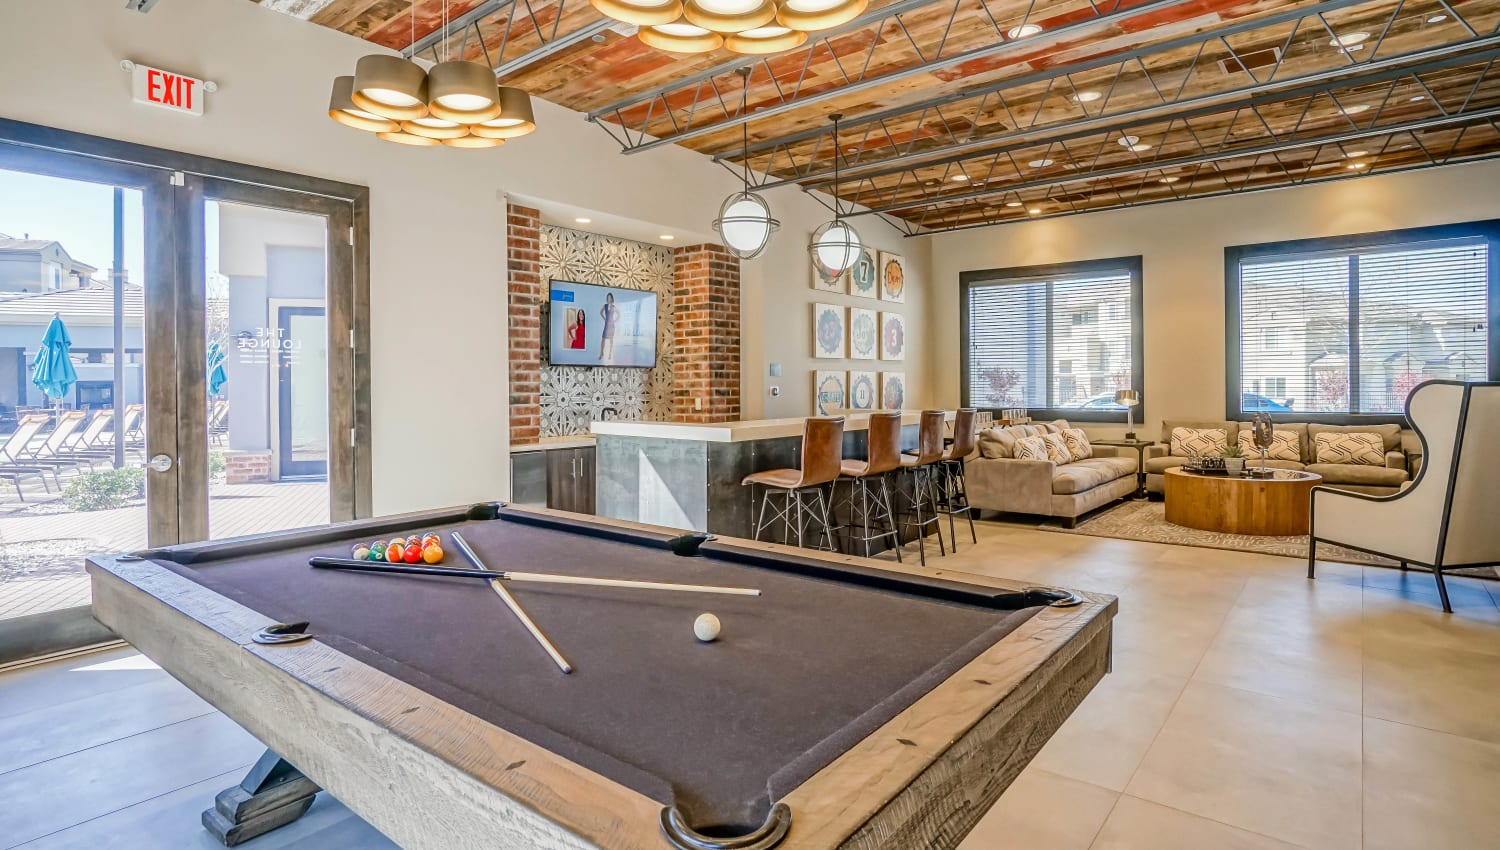 Luxurious game area with a billiards table and lounge seating in the resident clubhouse at Olympus Northpoint in Albuquerque, New Mexico